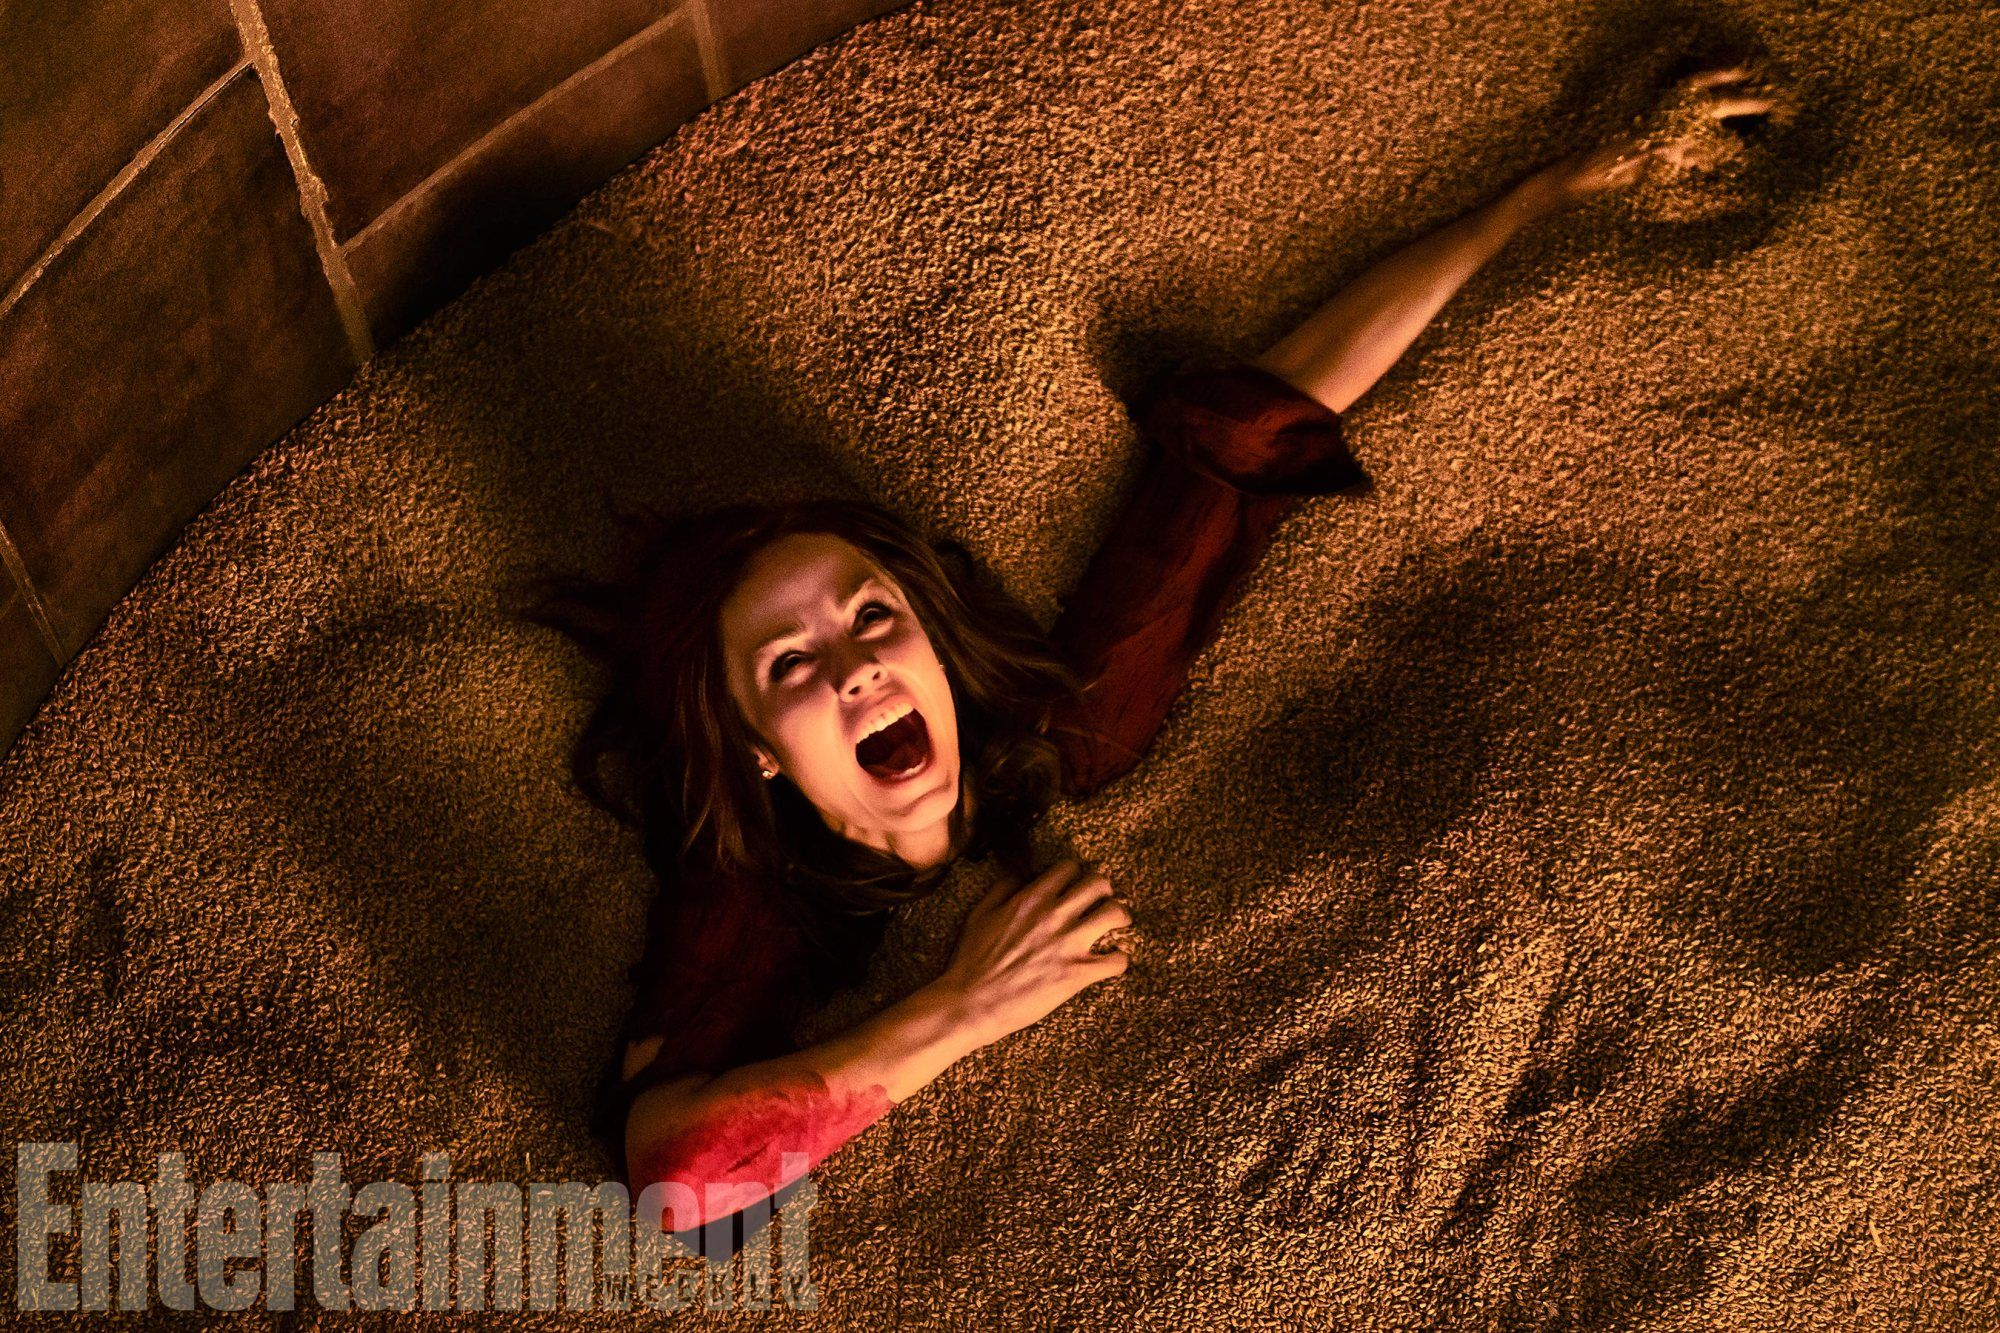 Lionsgate Releases Terrifying First Look Photo From 'Jigsaw'